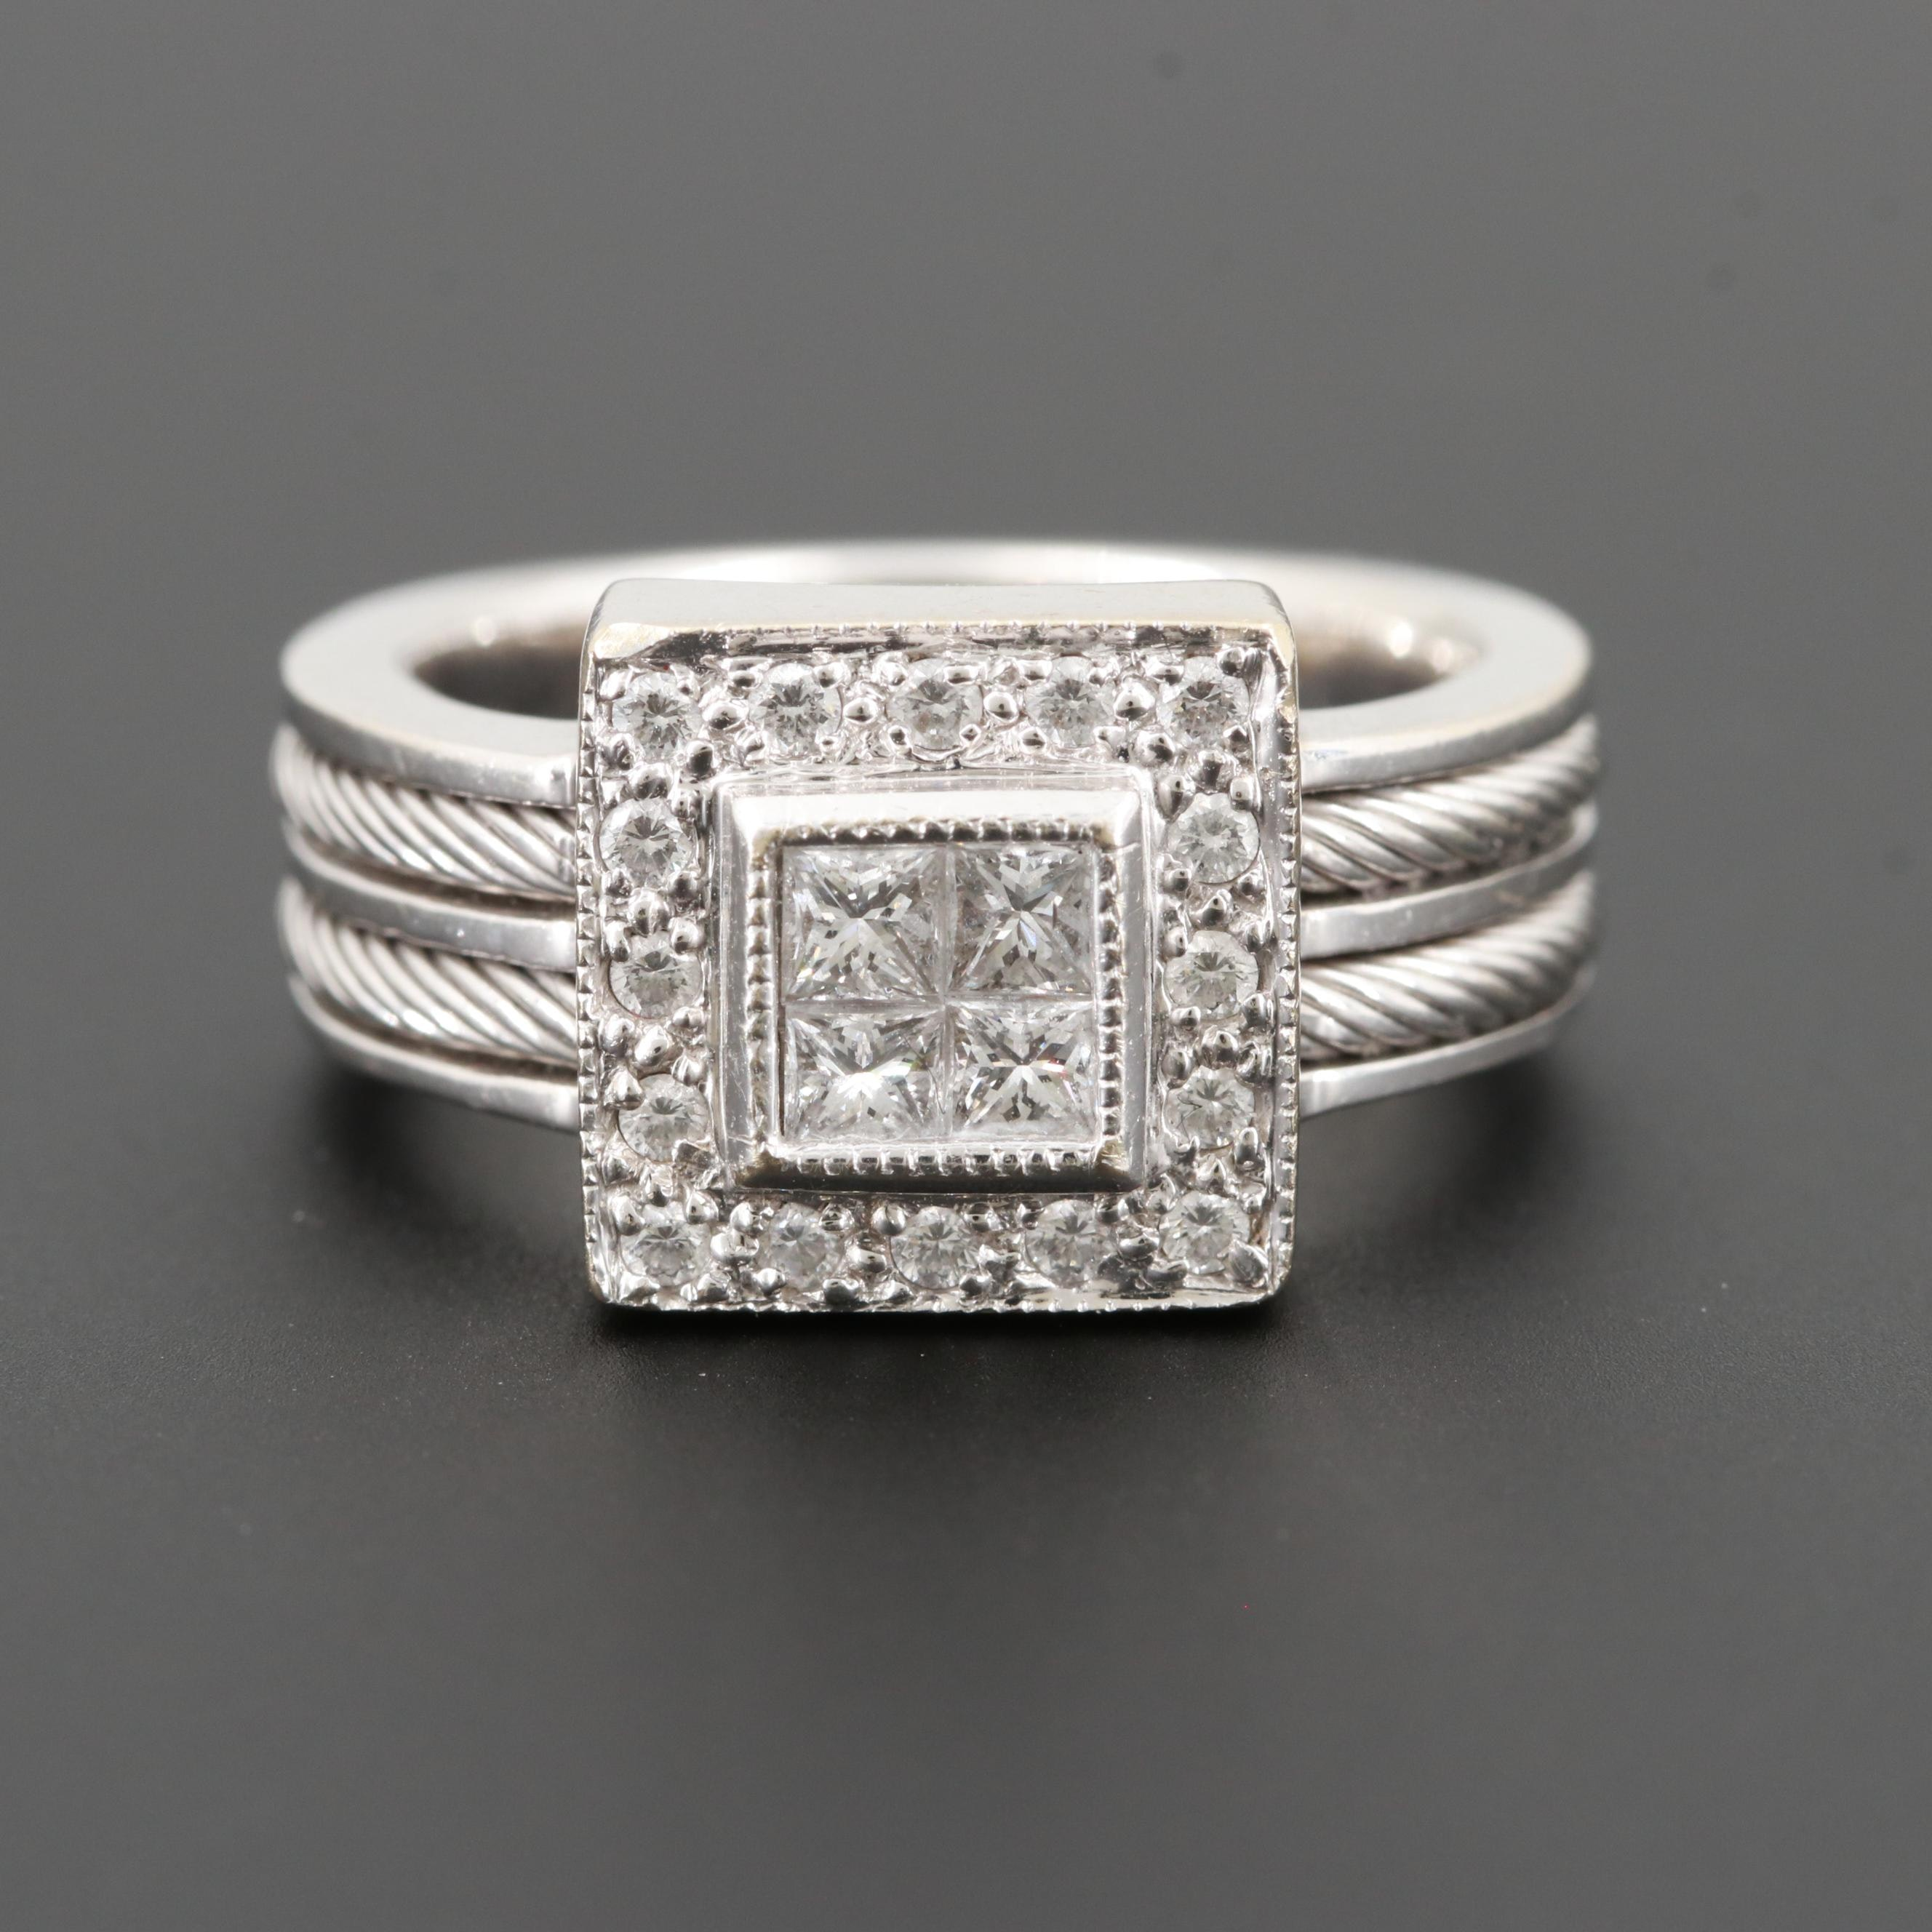 18K White Gold Diamond Ring with White Gold Rope Detail